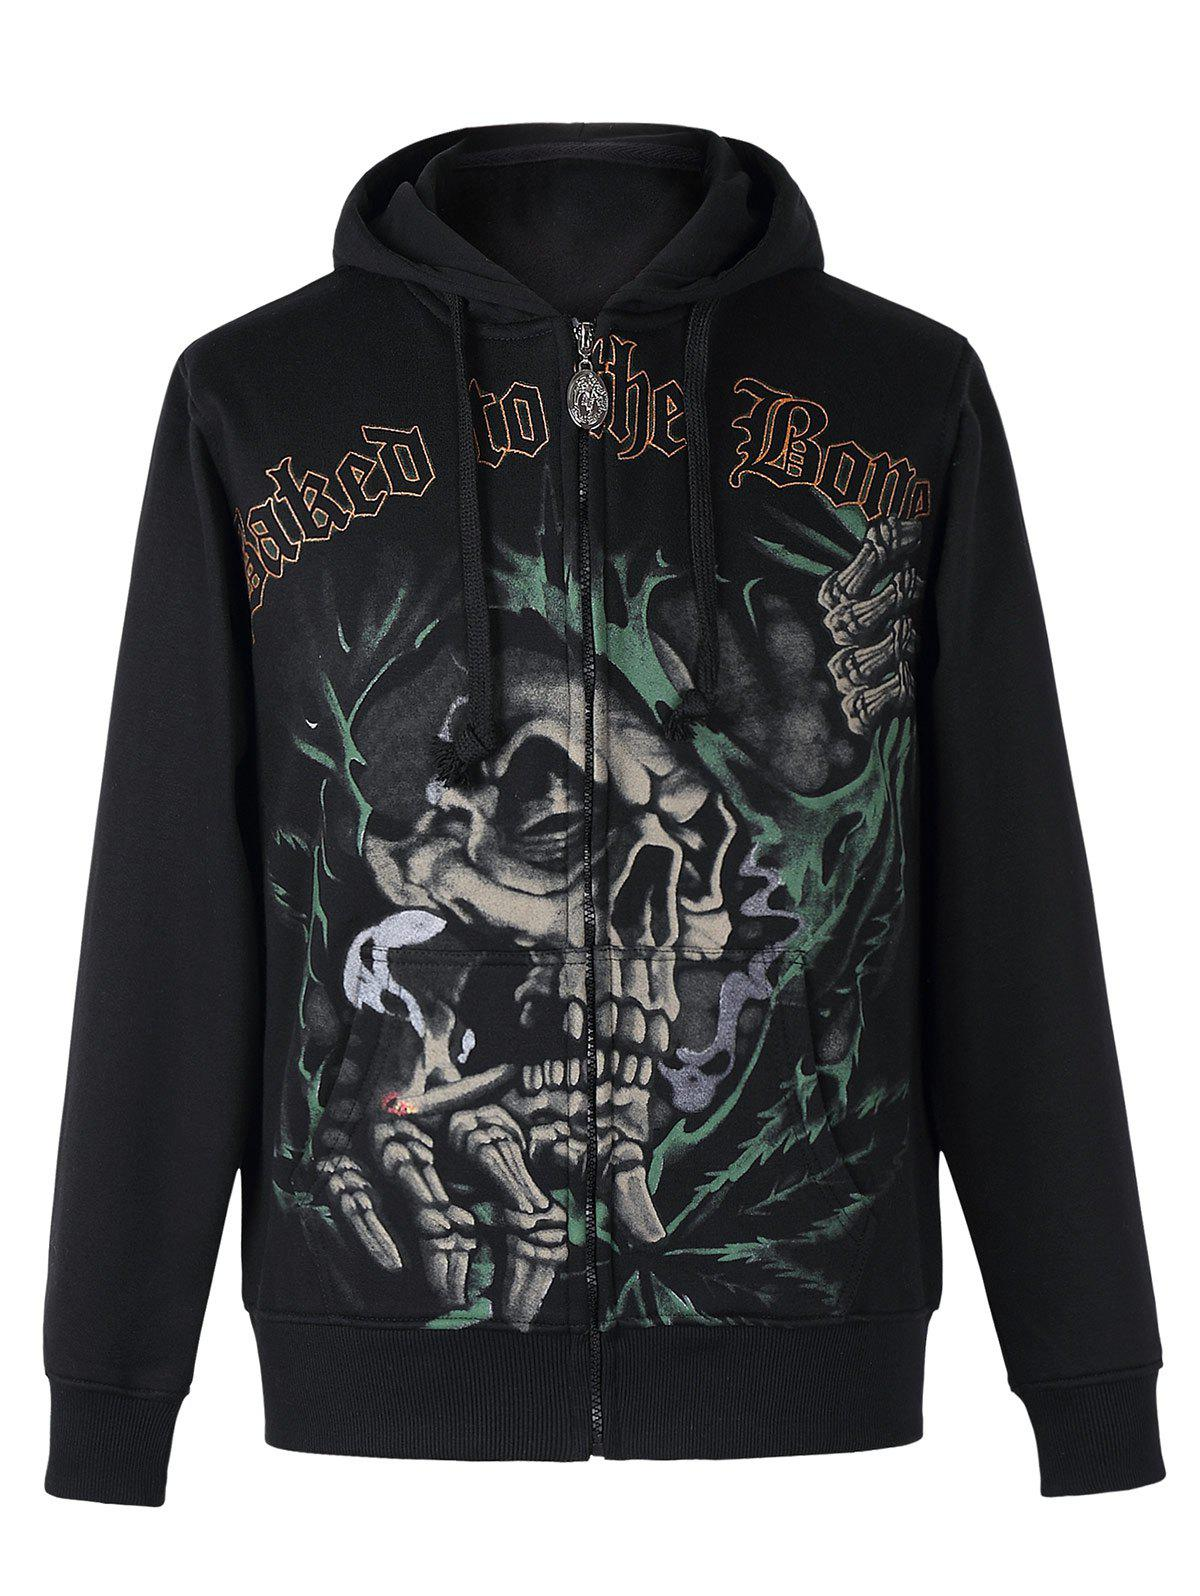 Active Skull Print Zipper Flying Long Sleeves Thicken Hoodie For Men - BLACK 2XL